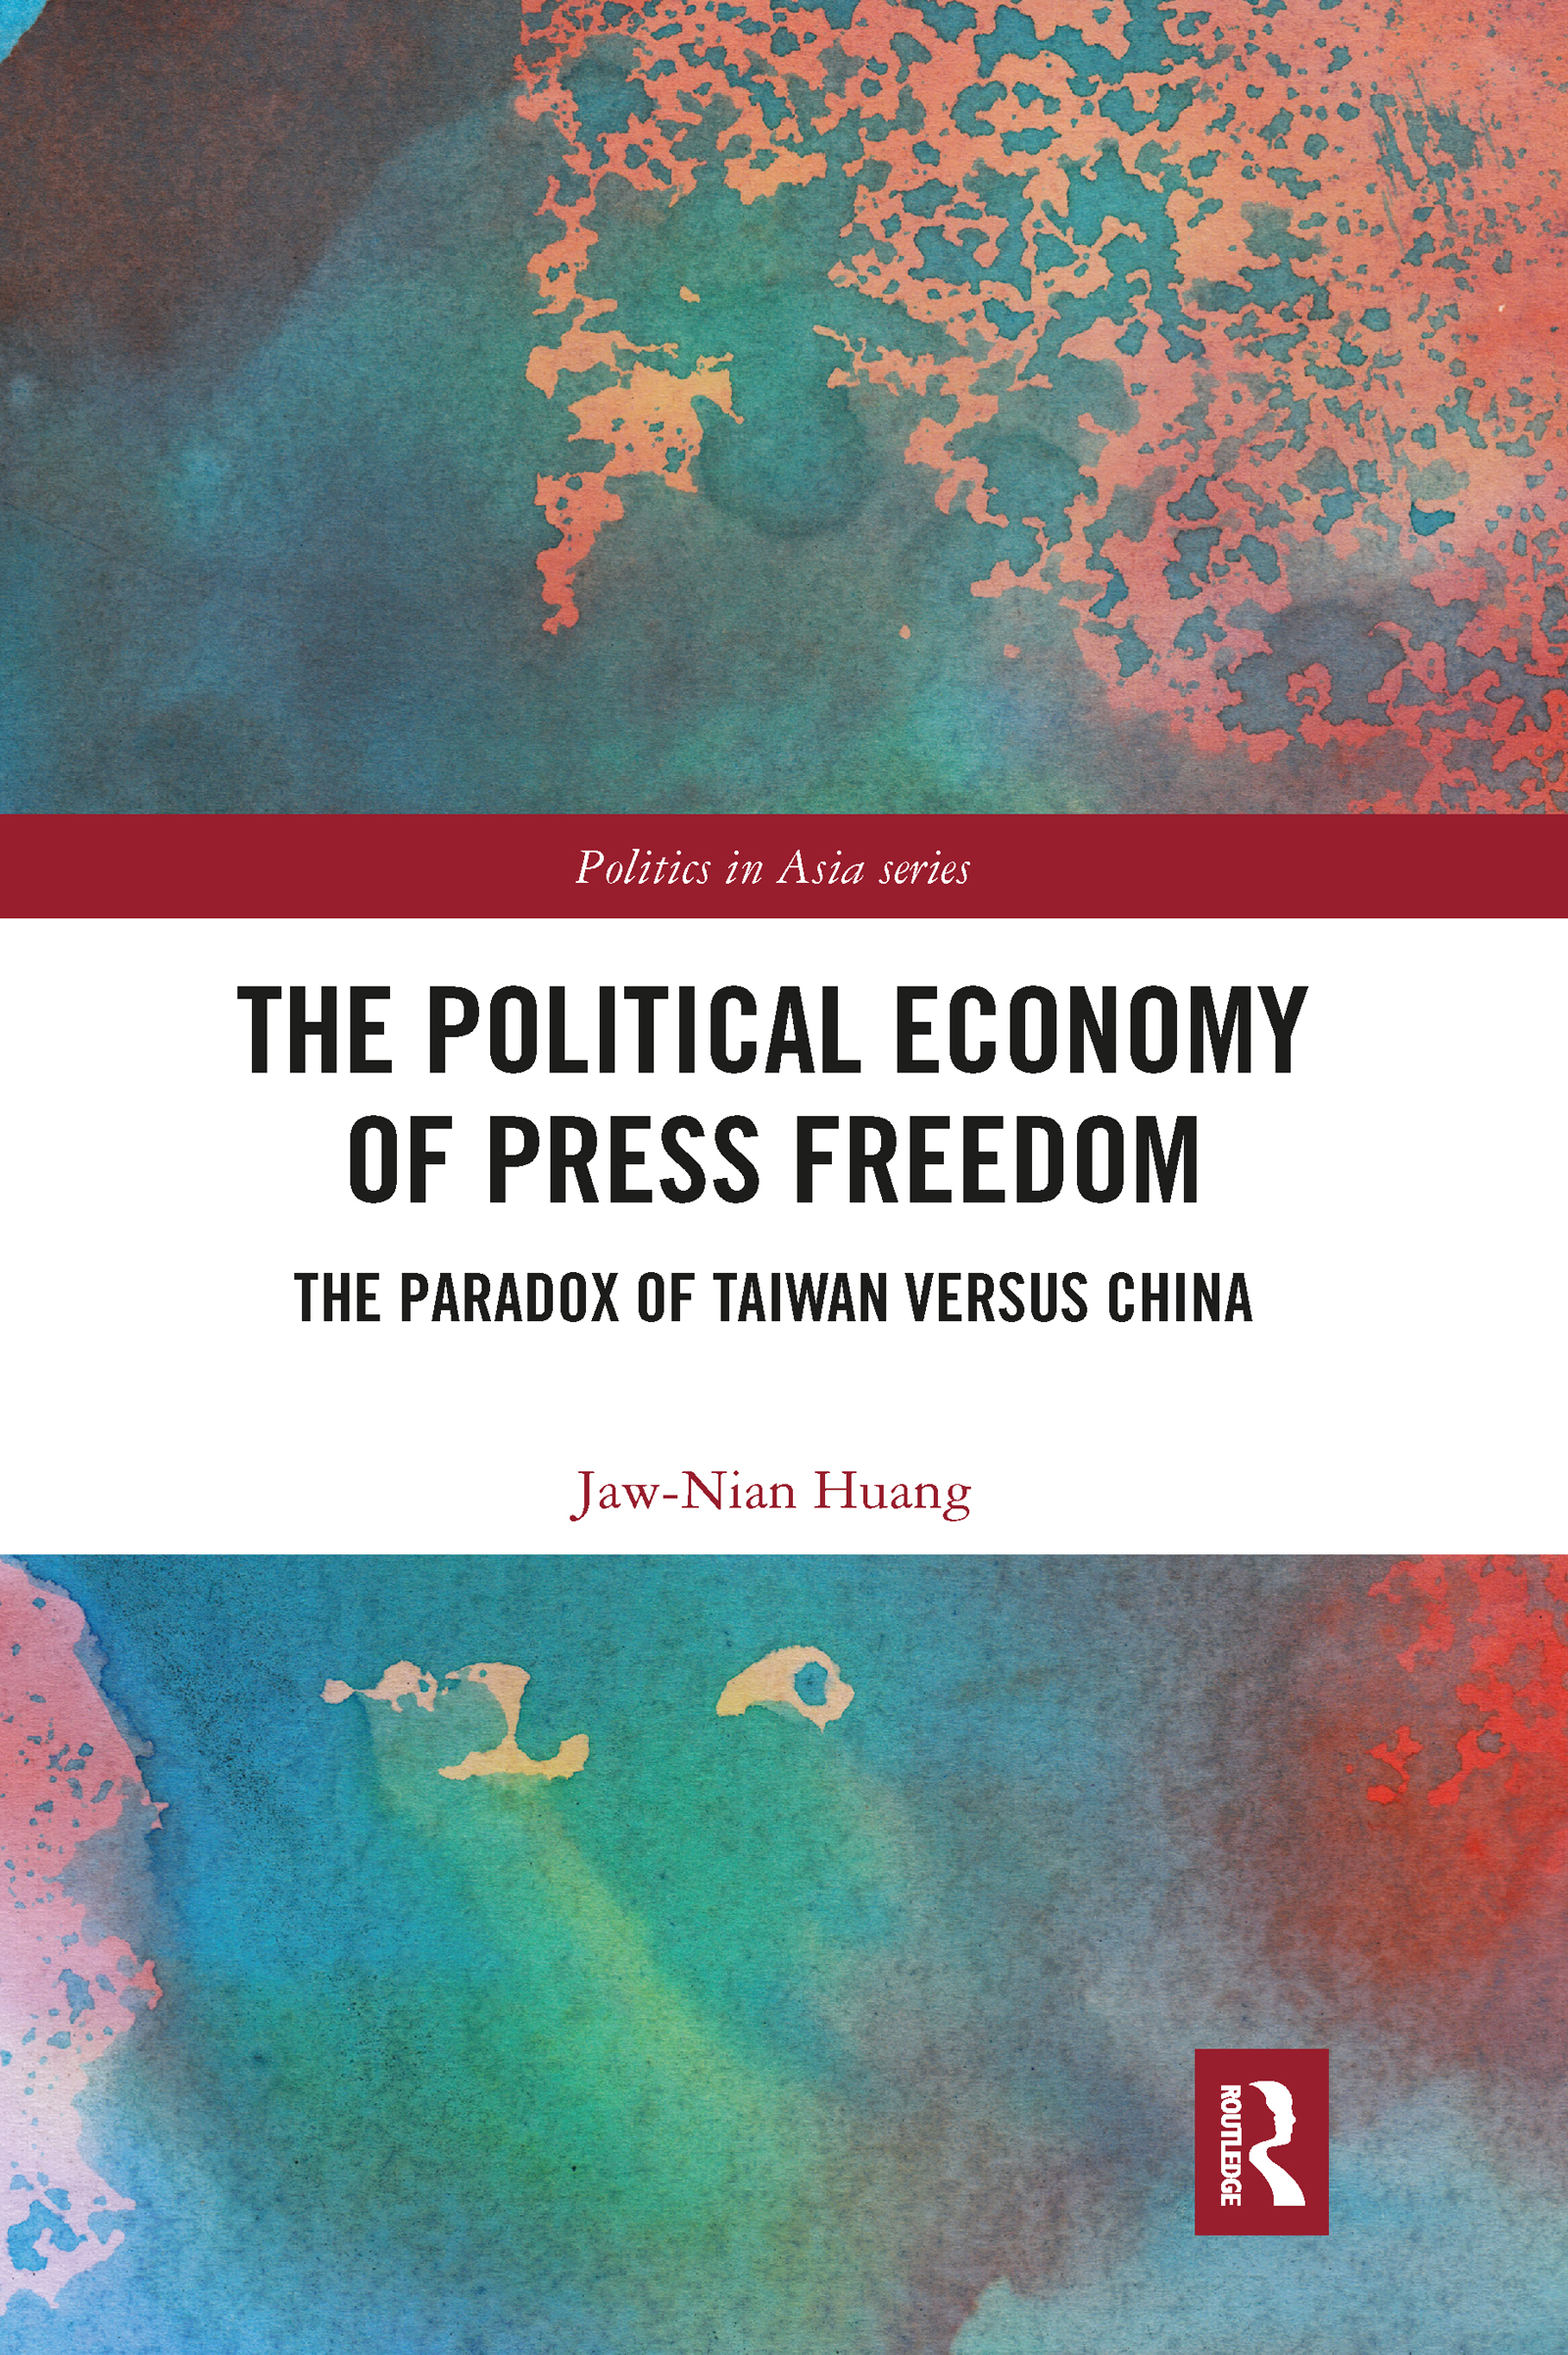 The Political Economy of Press Freedom